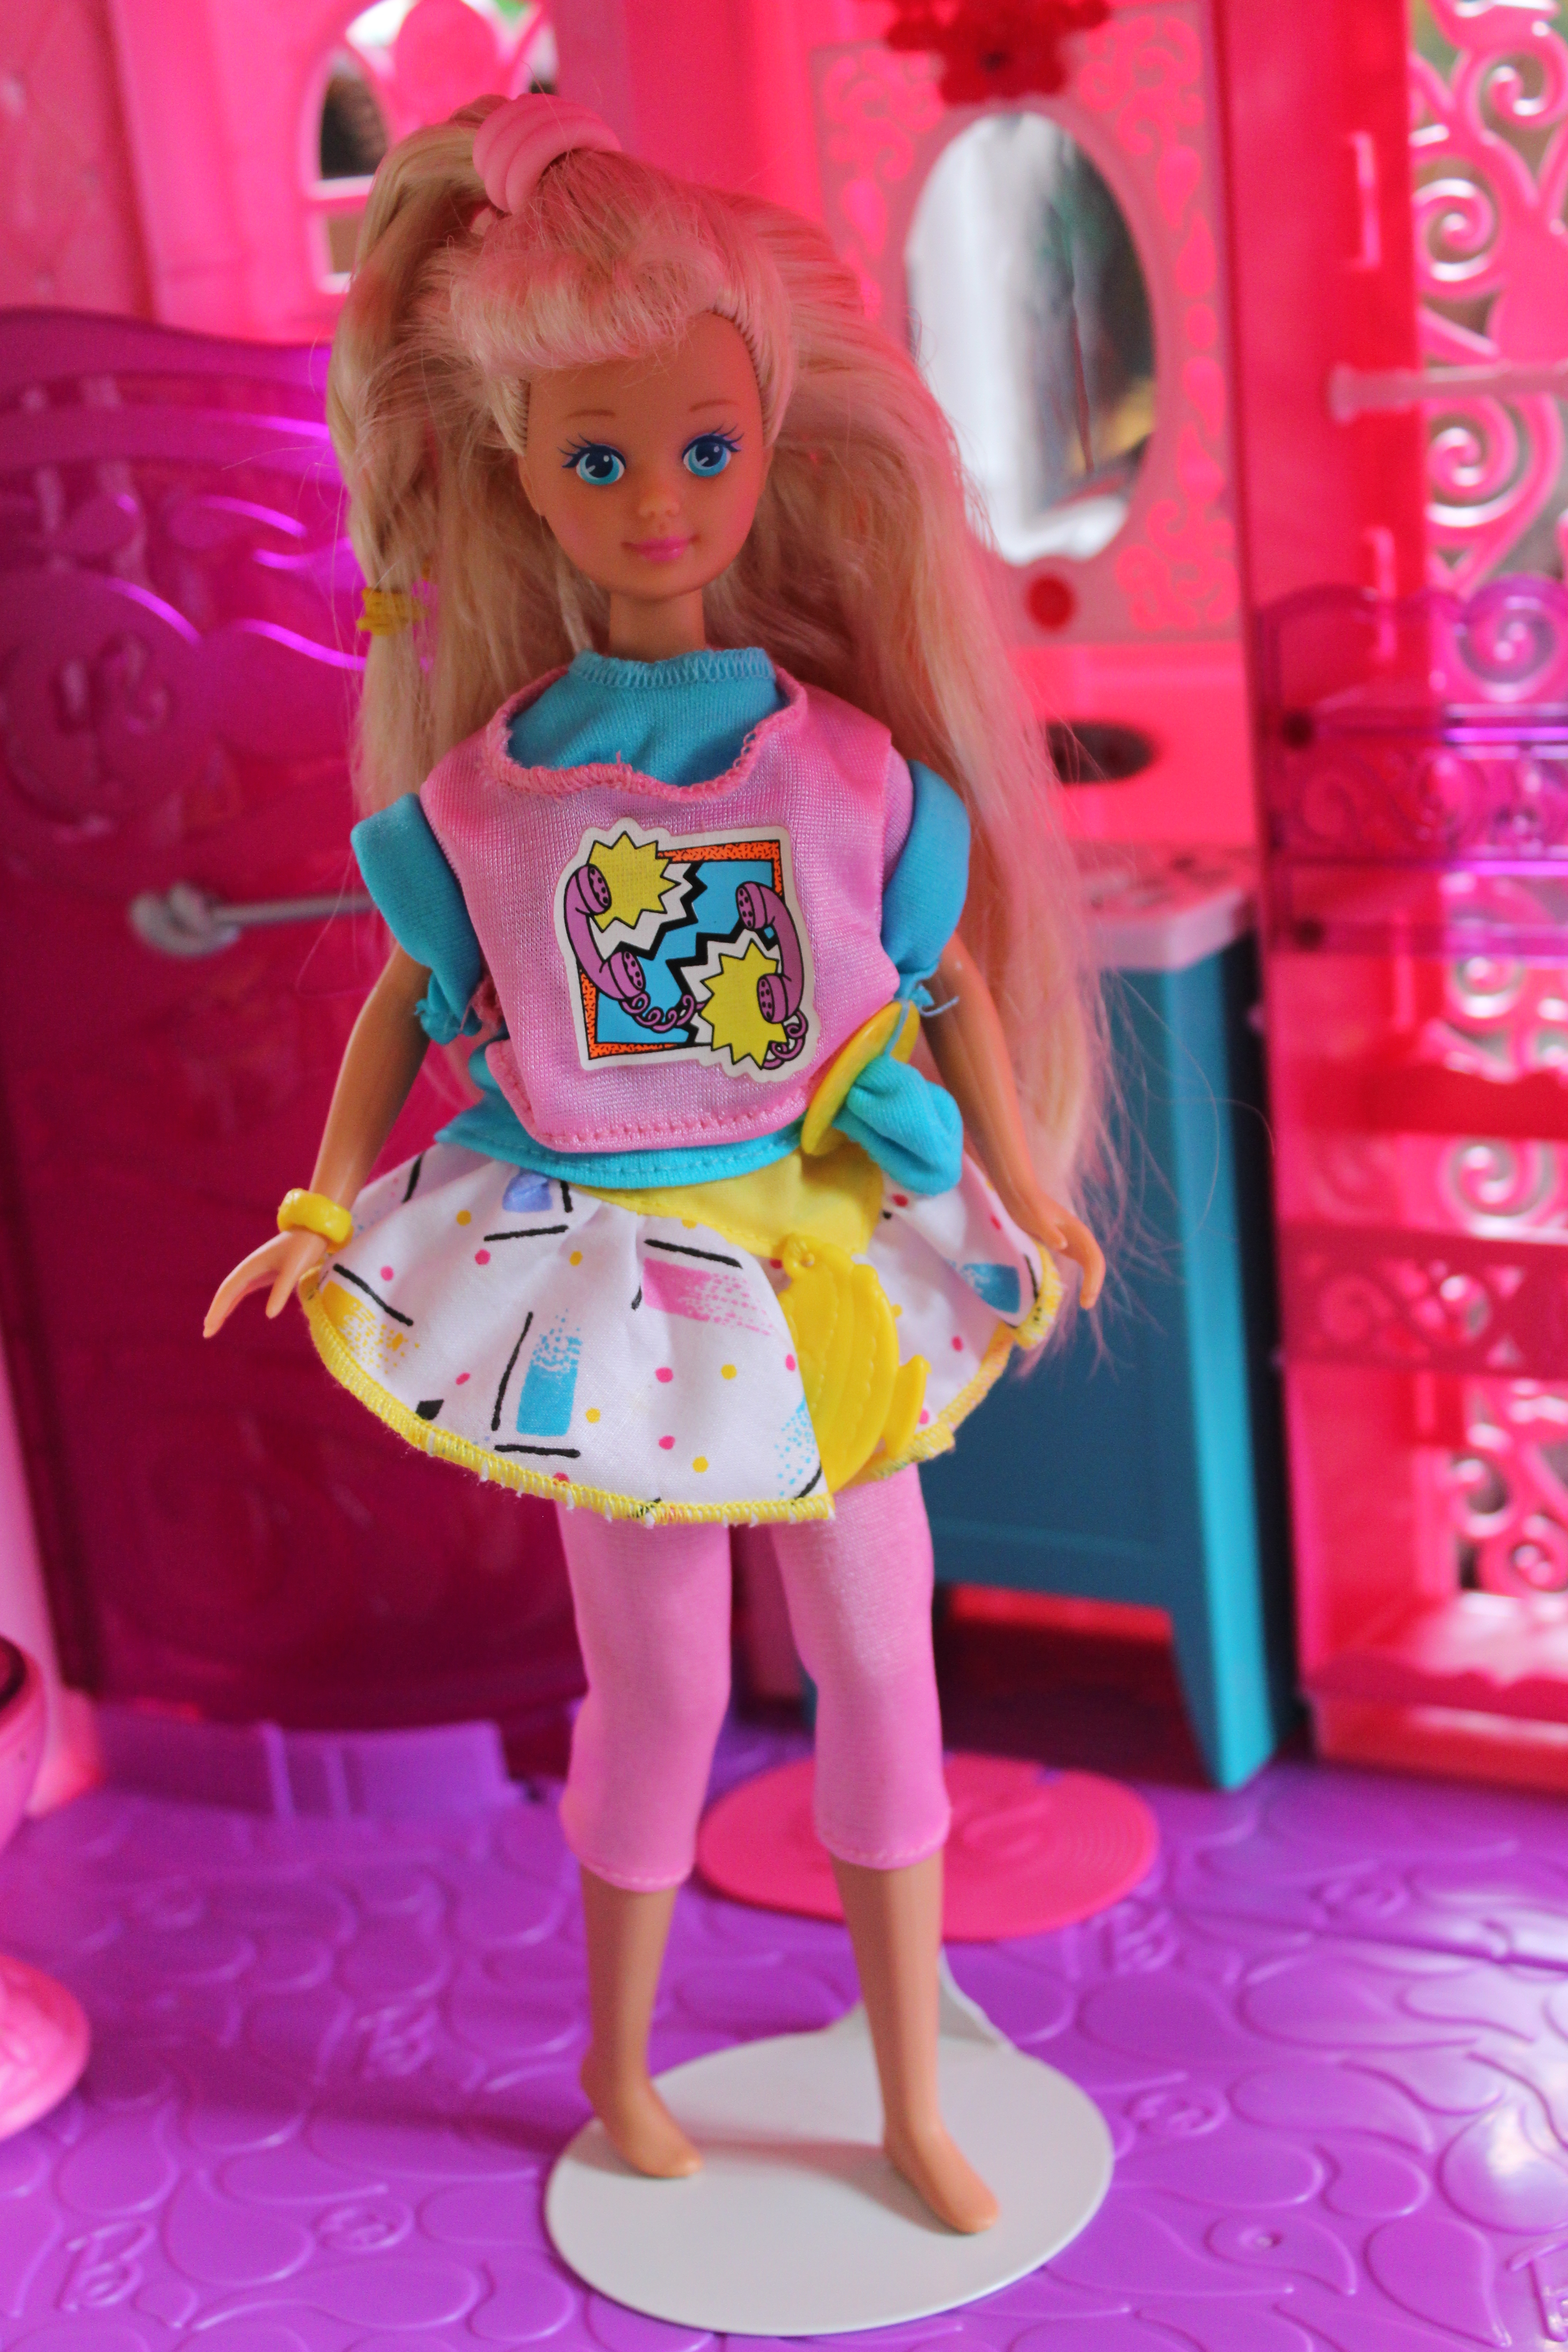 skipper | Confessions of a Doll Collectors Daughter | Page 6